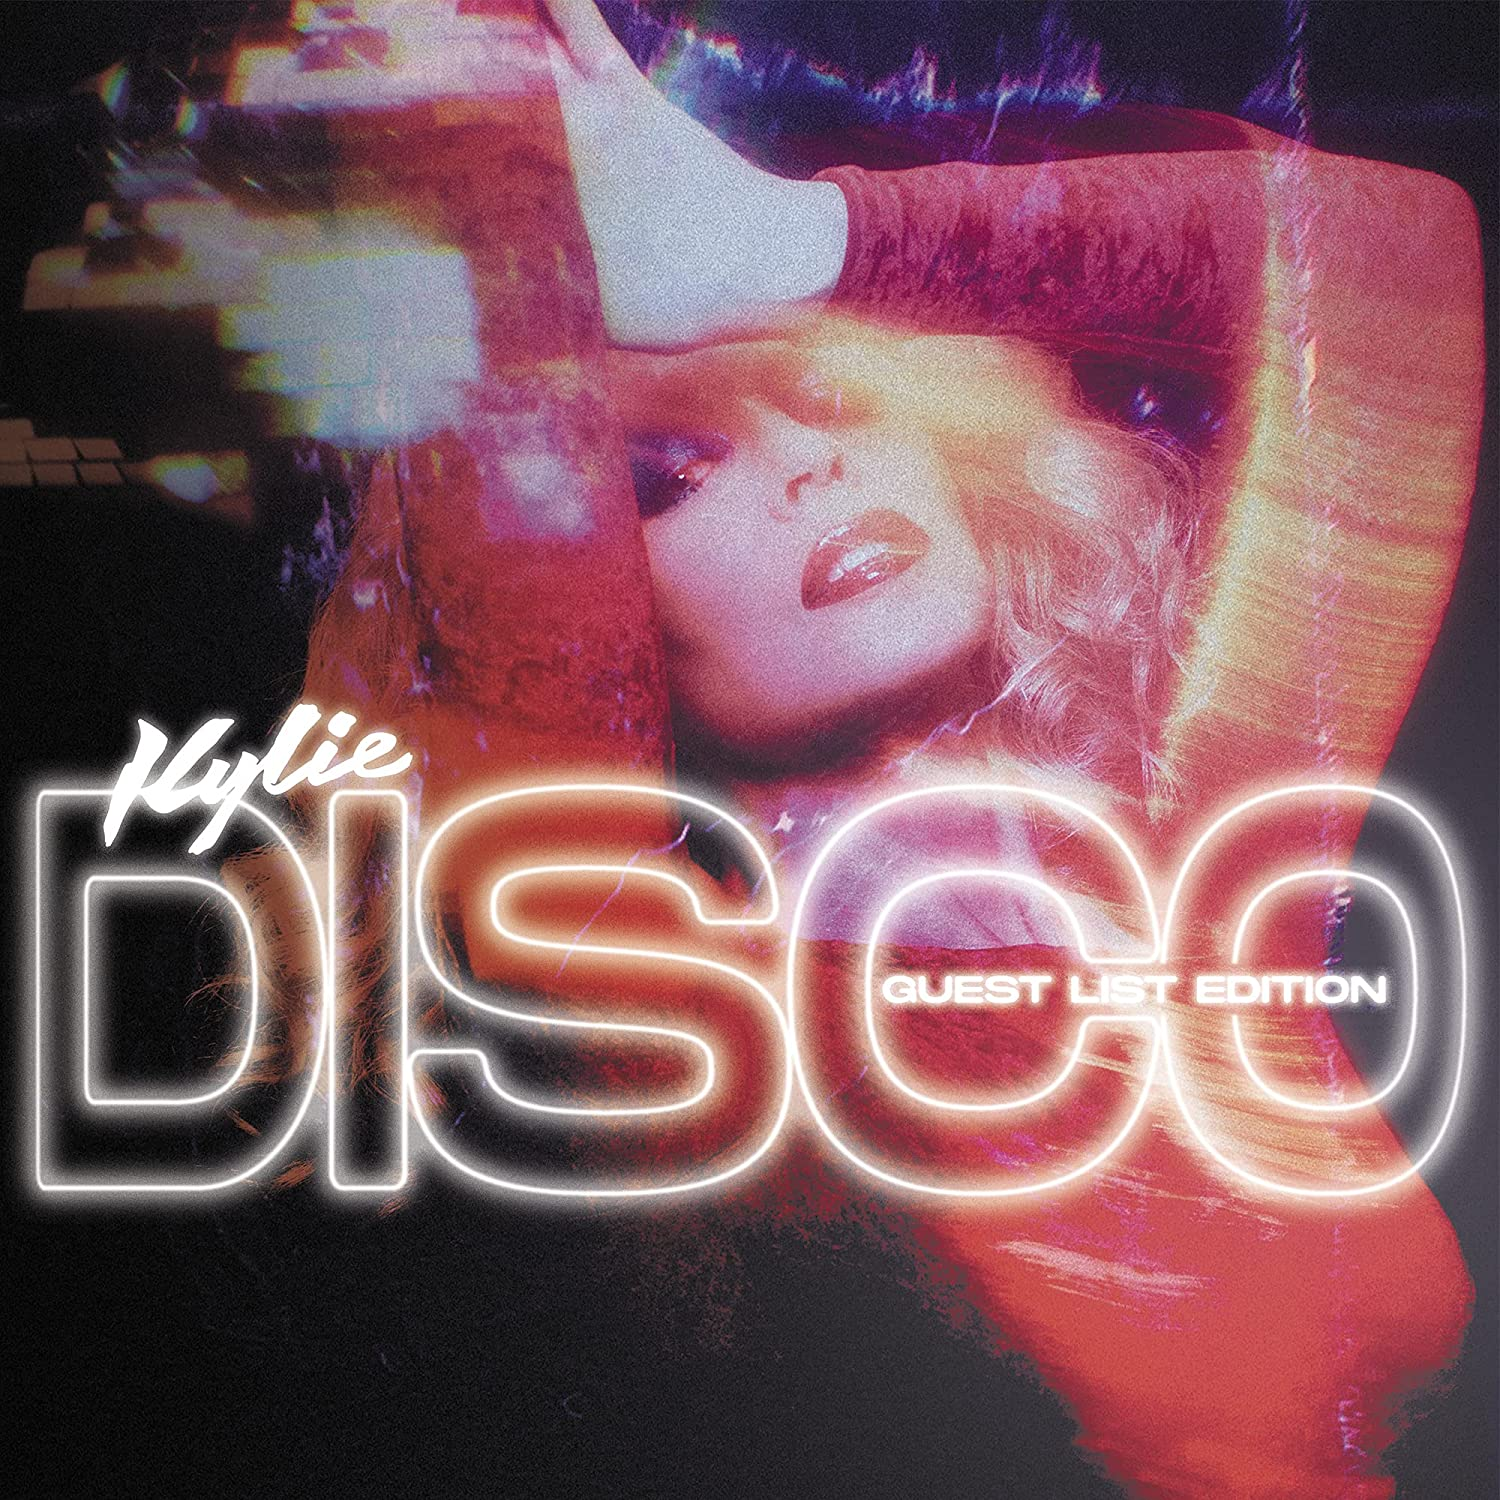 Kylie Minogue Disco Guest List Edition - Kylie Minogue and Years & Years - A Second to Midnight